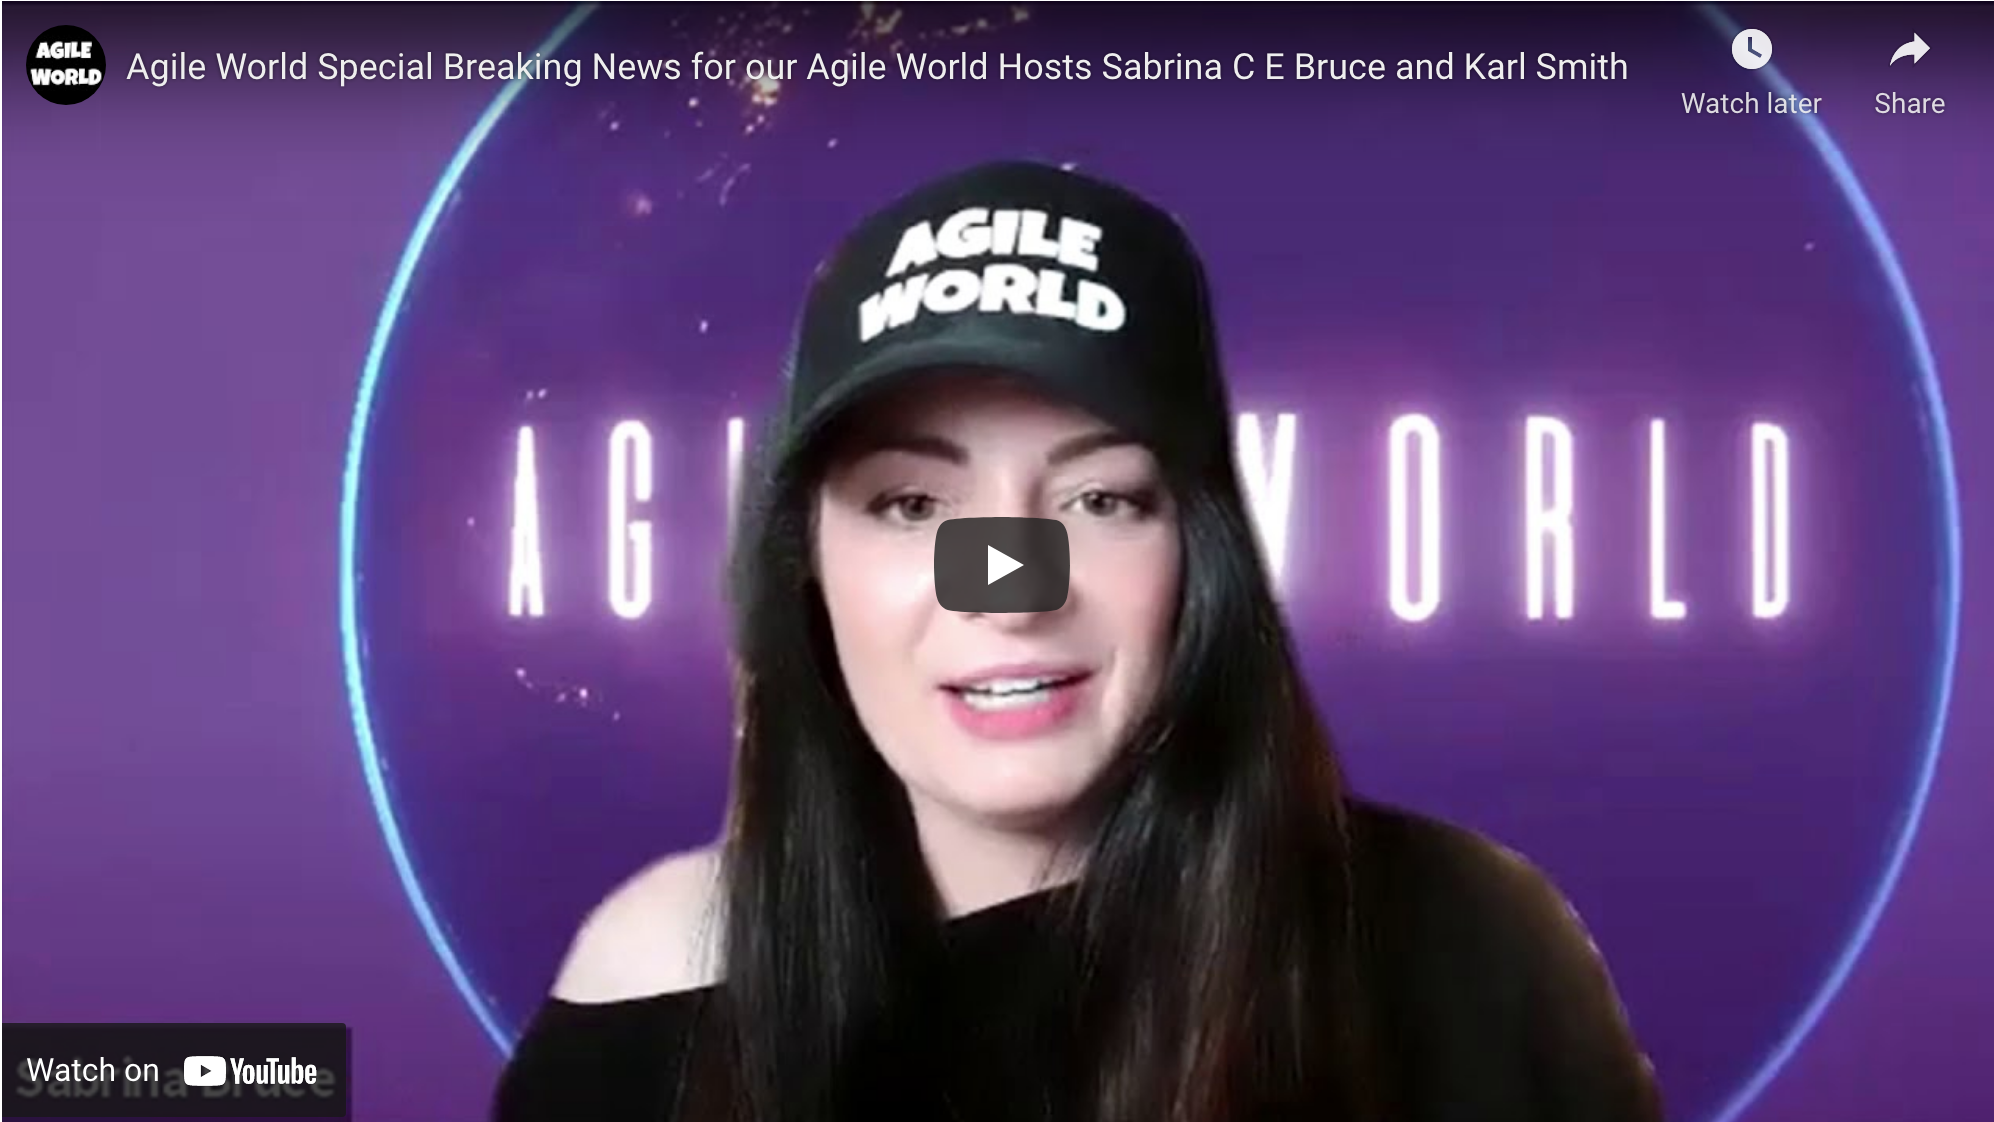 Agile World Special Breaking News for our Agile World Hosts Sabrina C E Bruce and Karl Smith